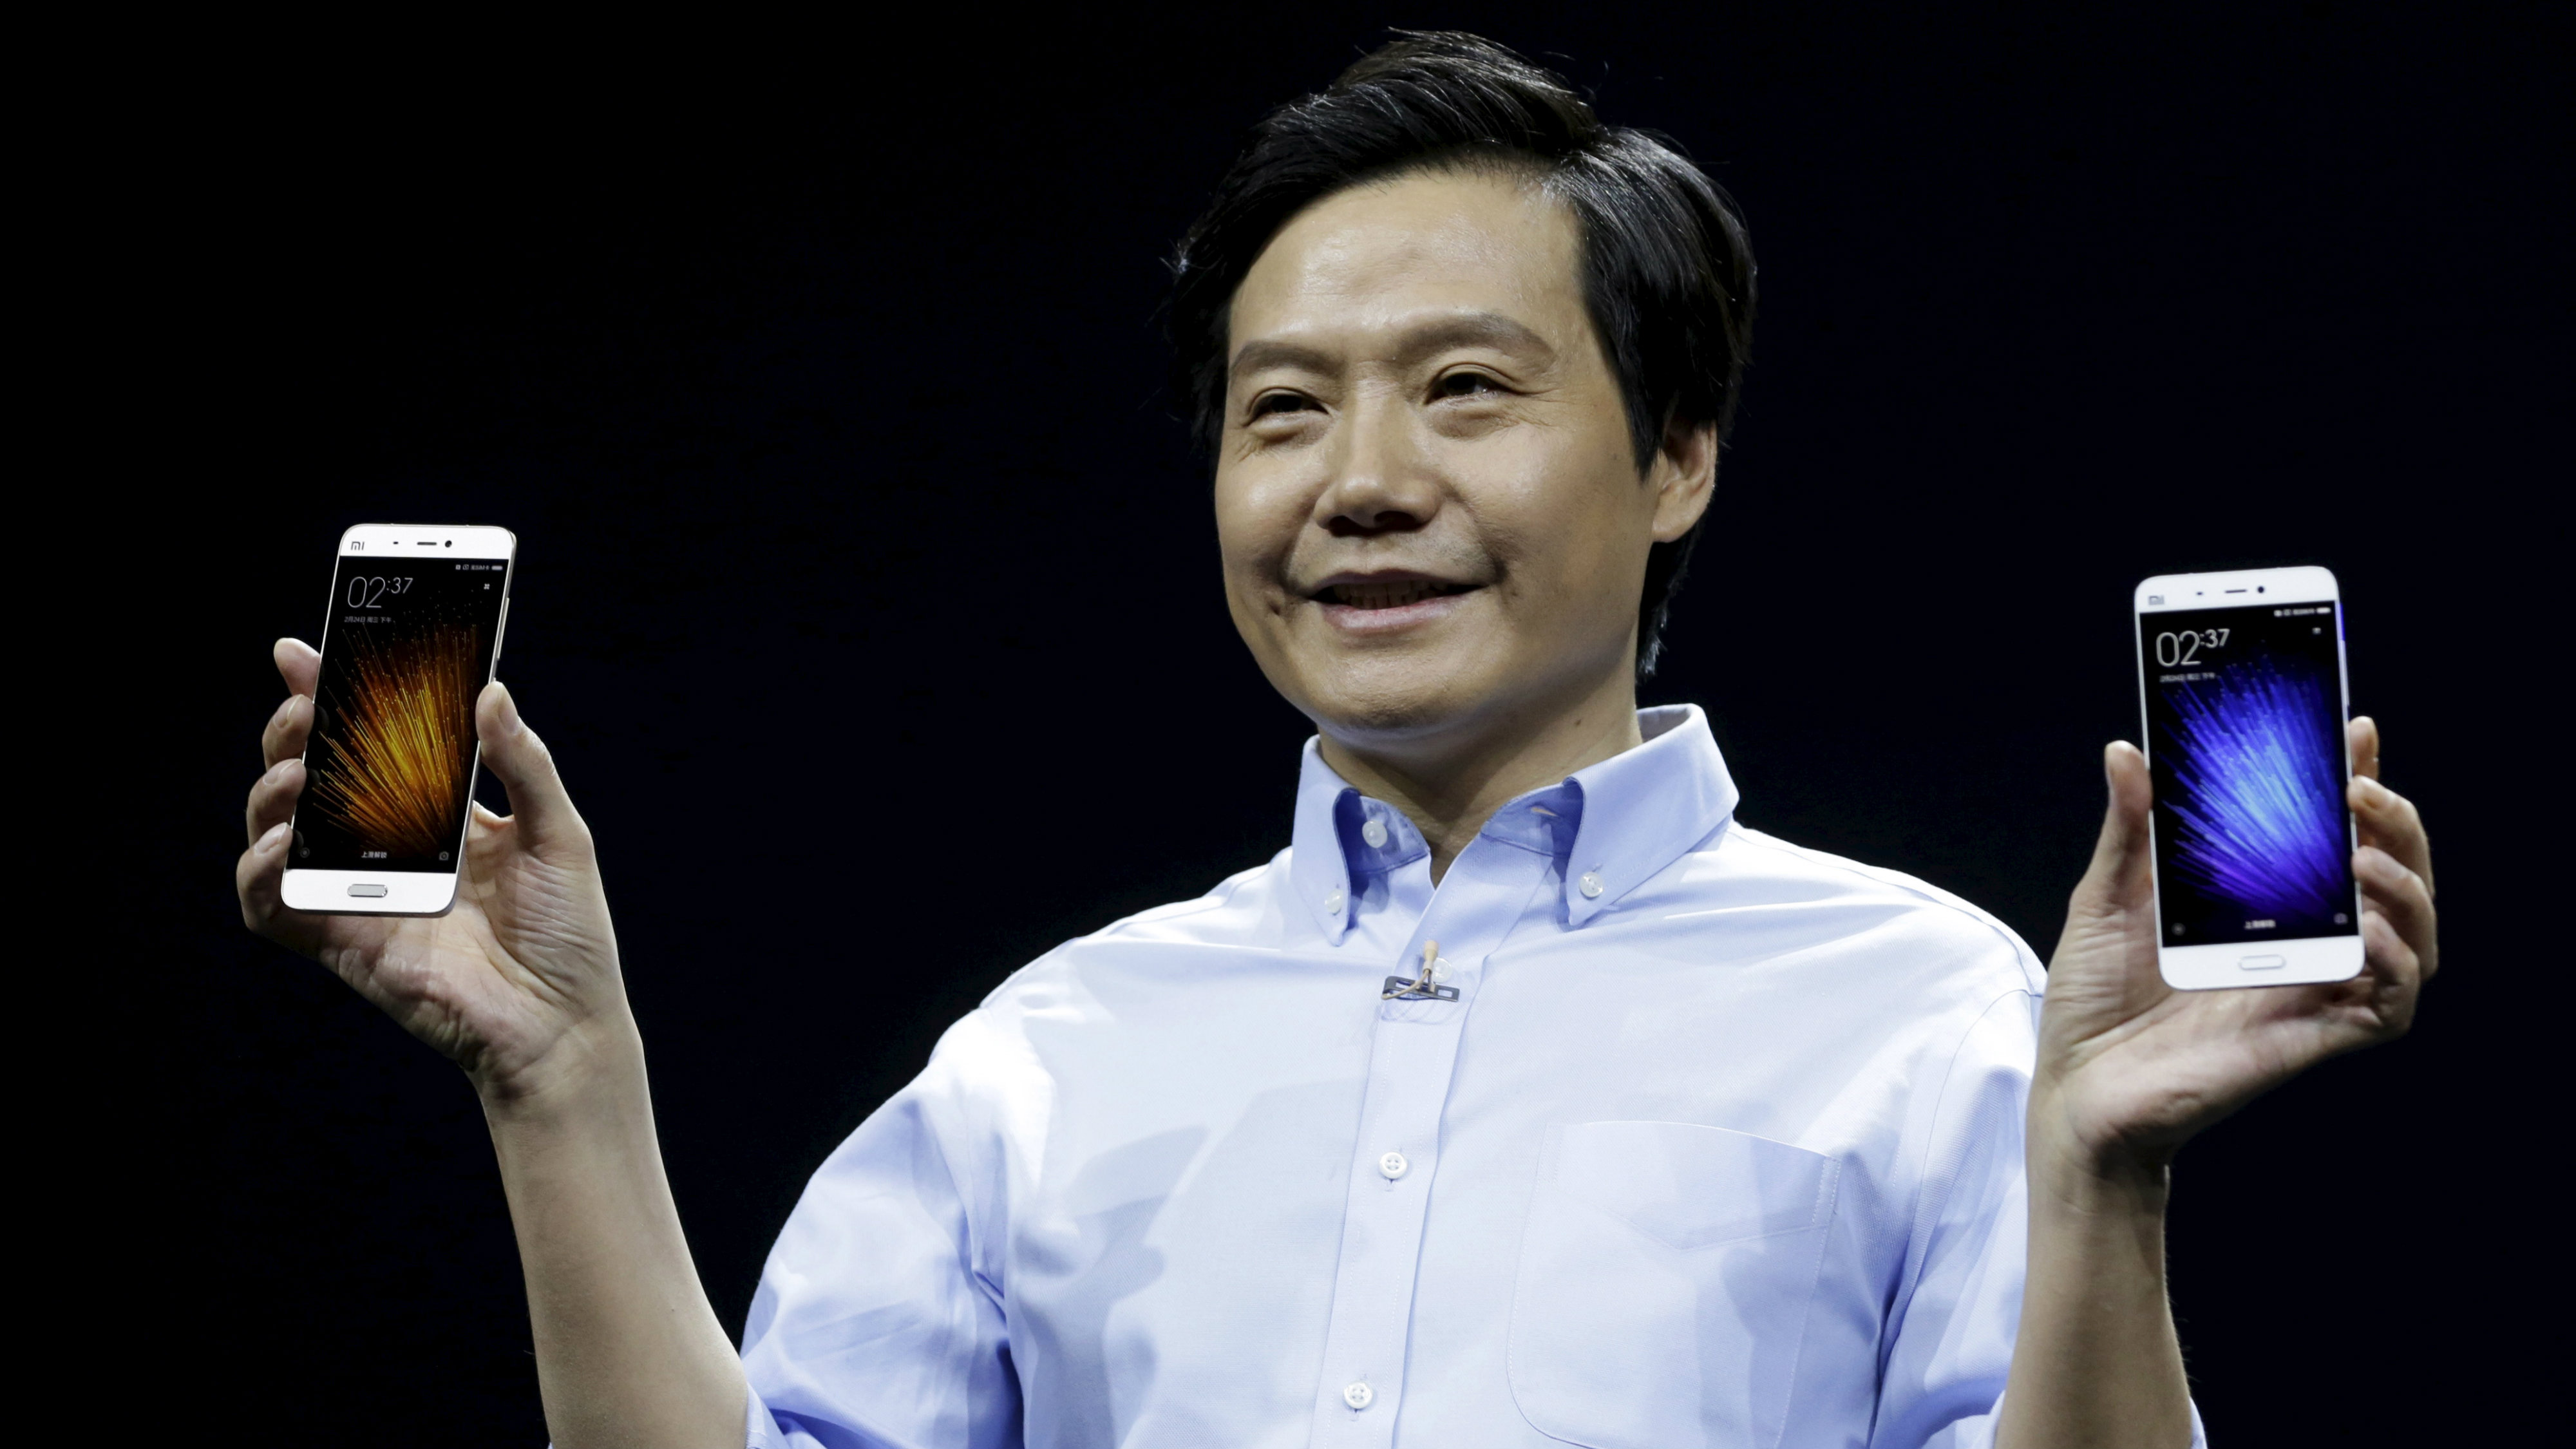 Lei Jun, founder and CEO of China's mobile company Xiaomi, displays Xiaomi Mi 5 at its launch ceremony, in Beijing, China, February 24, 2016